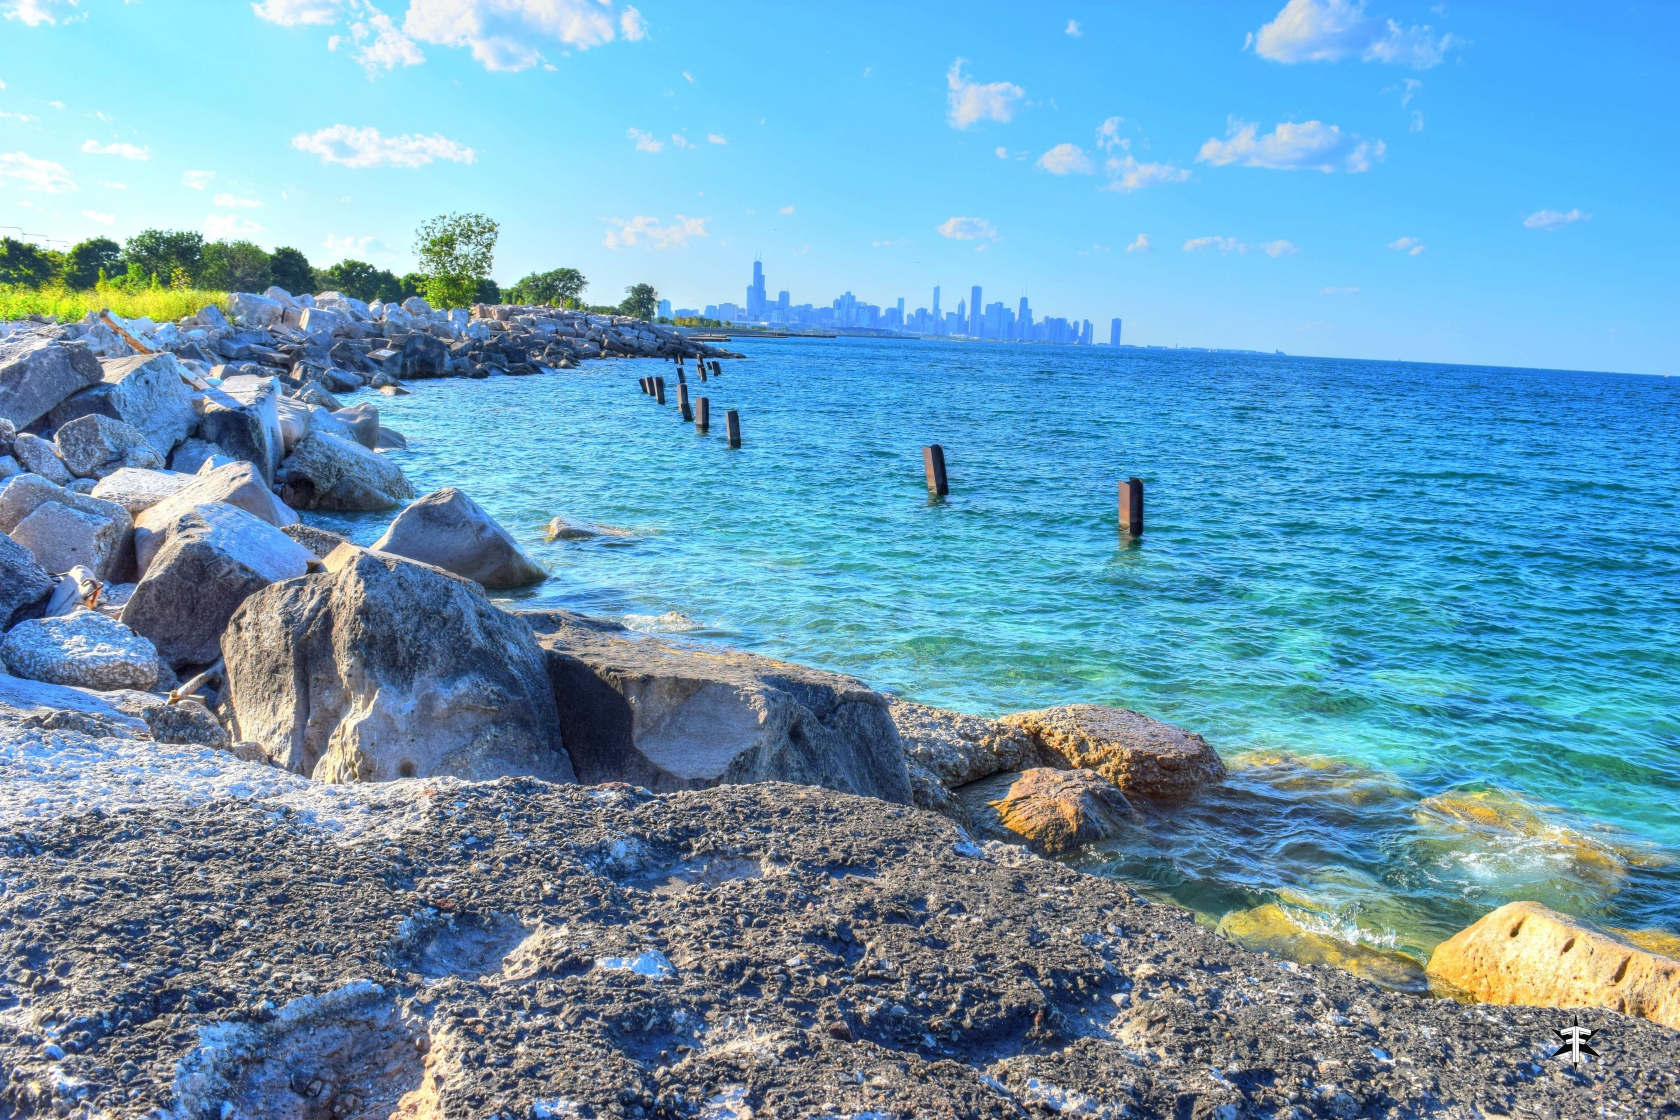 batch_chicago lake michigan skyline water colorful normal.jpg